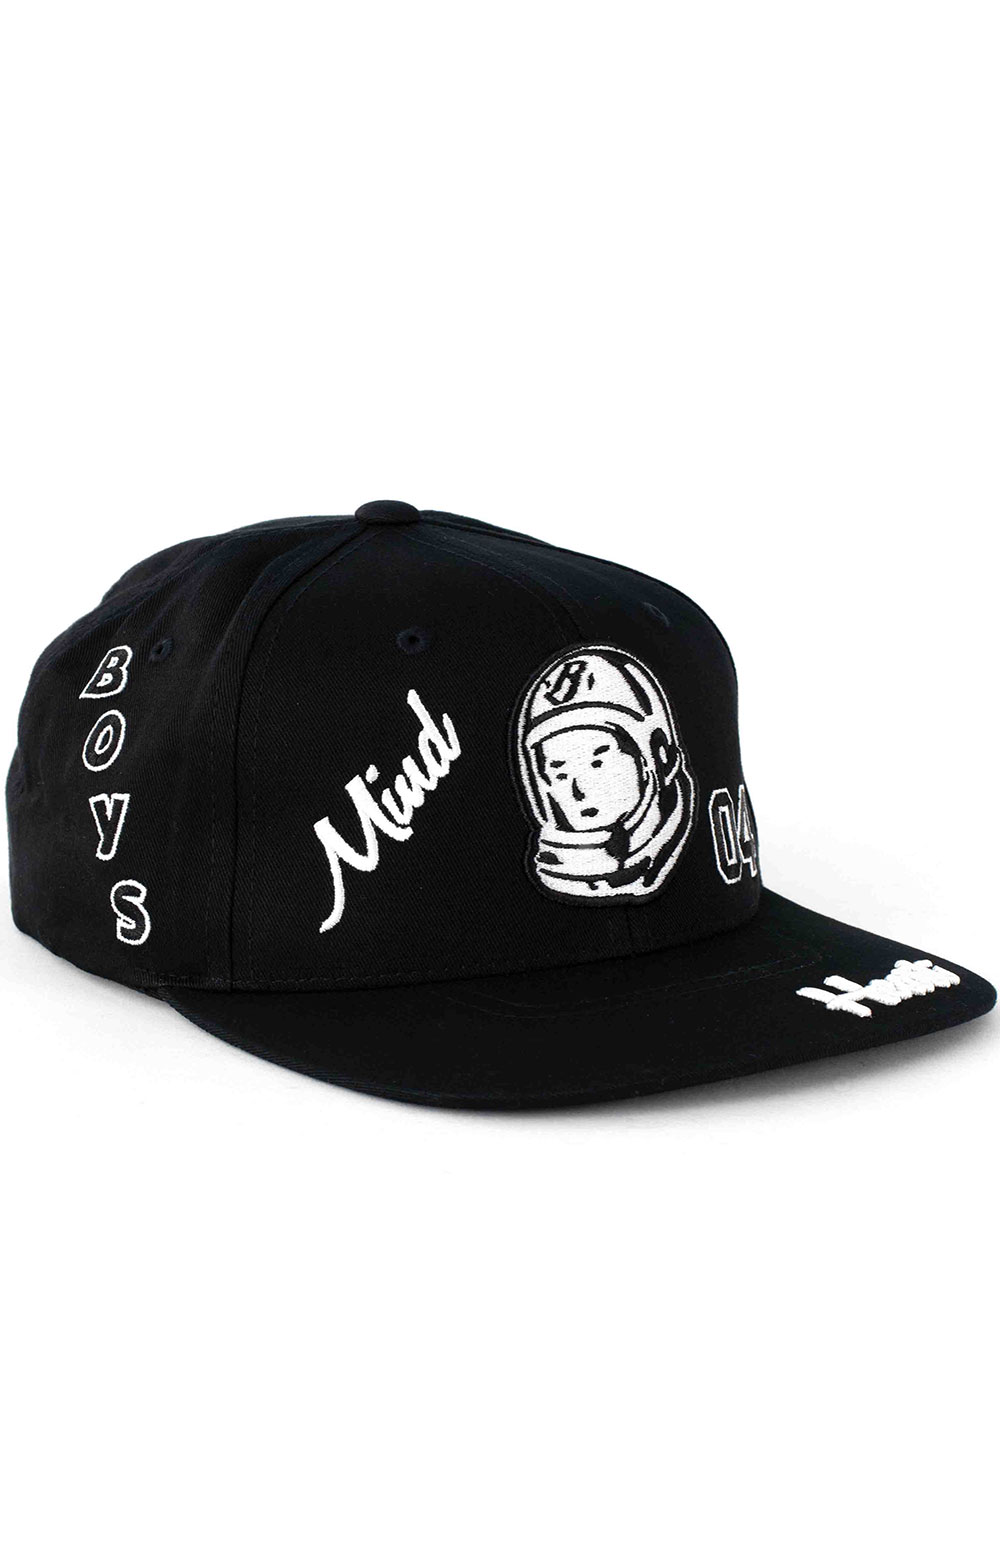 BB Captain Snap-Back Hat - Black 3